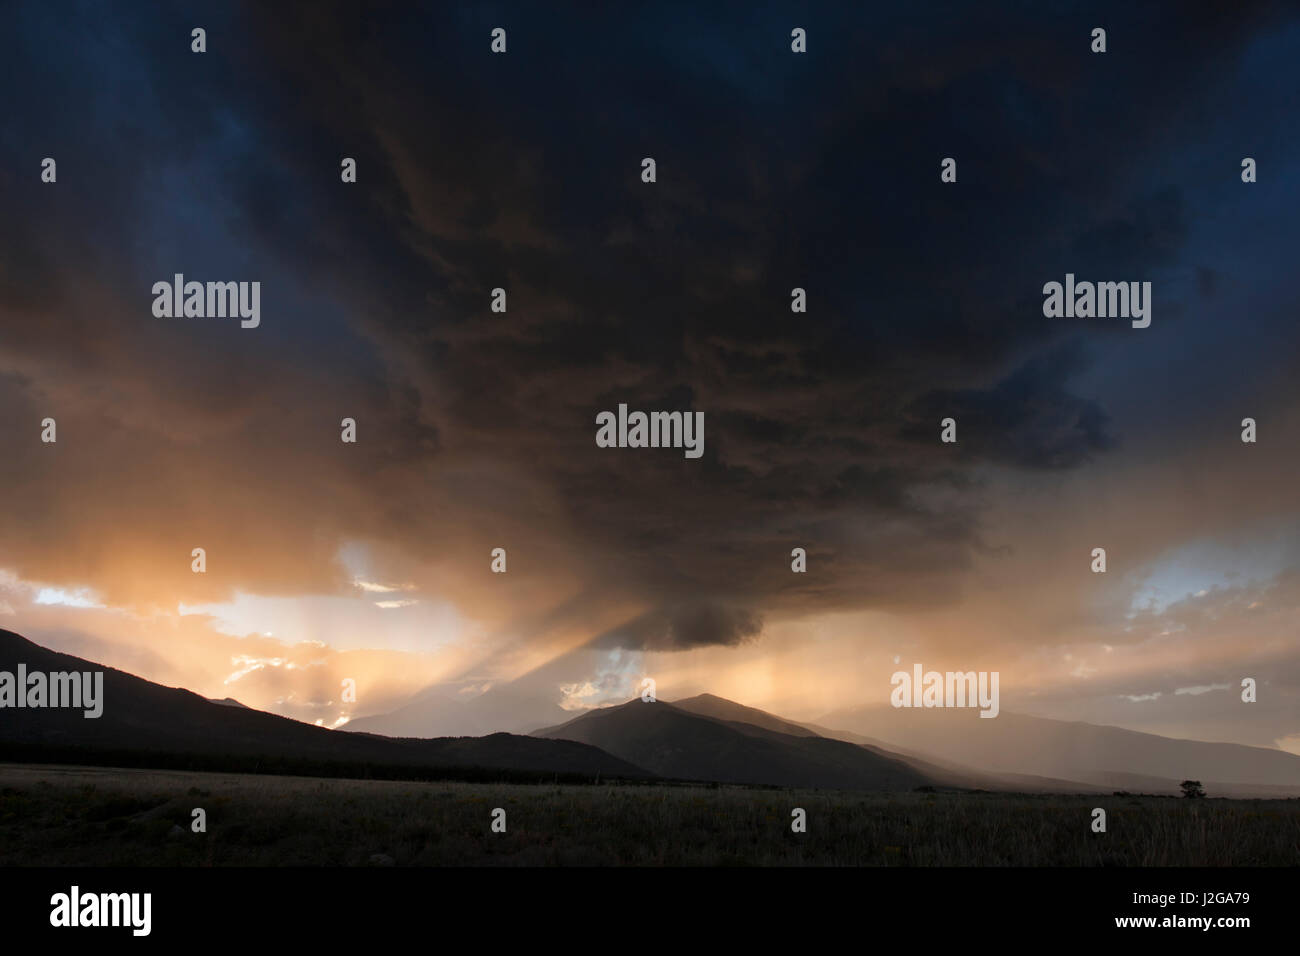 USA, Colorado, Collegiate Range. Storm clouds over mountain at sunset. Credit as: Don Grall / Jaynes Gallery / DanitaDelimont.com - Stock Image